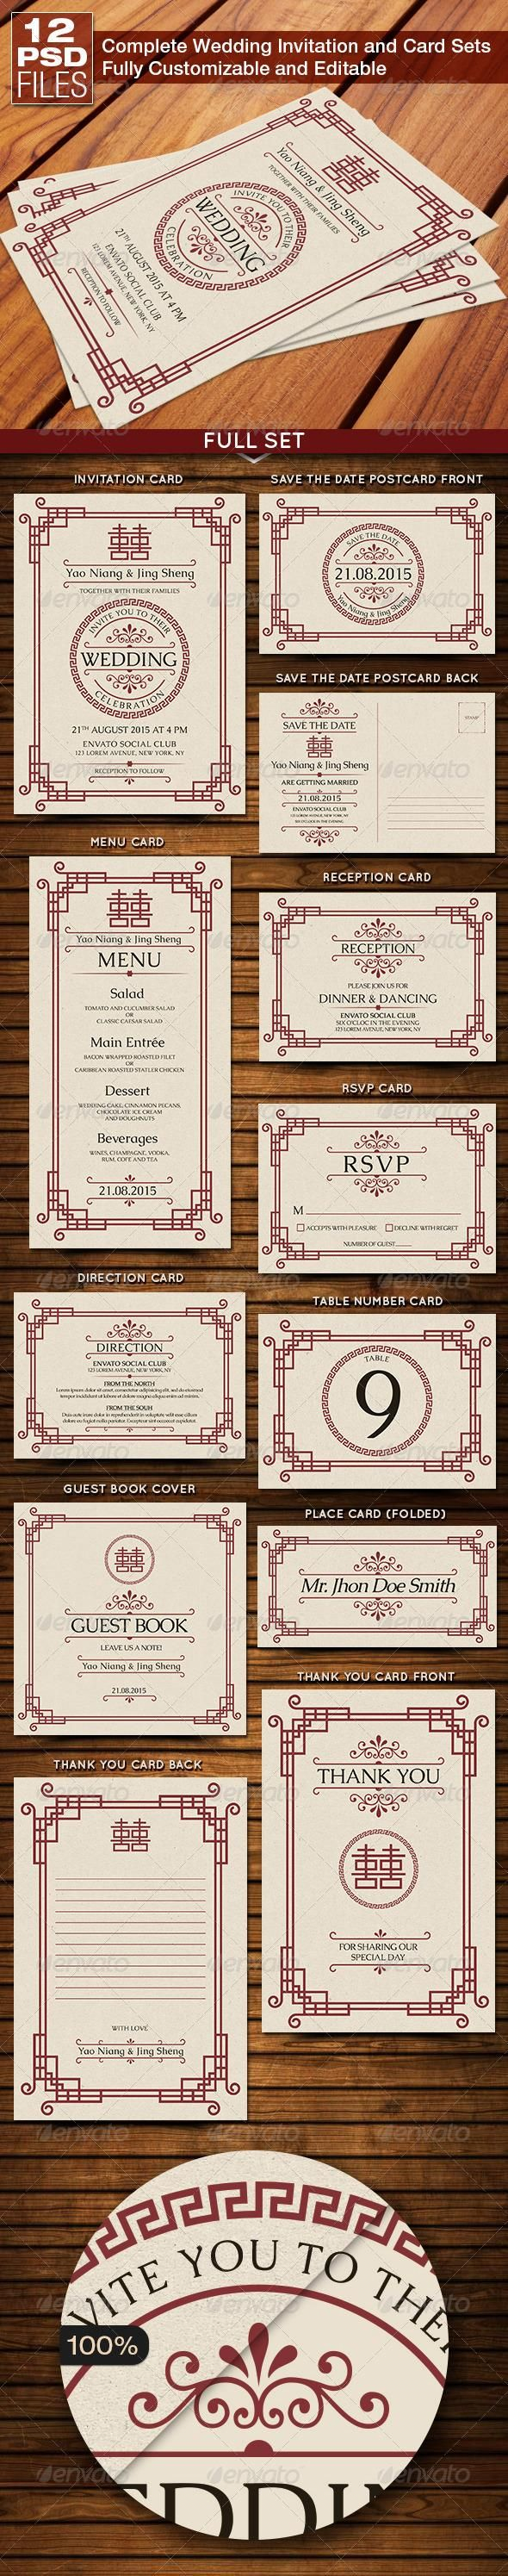 Oriental Style Wedding Invitation and Card Sets